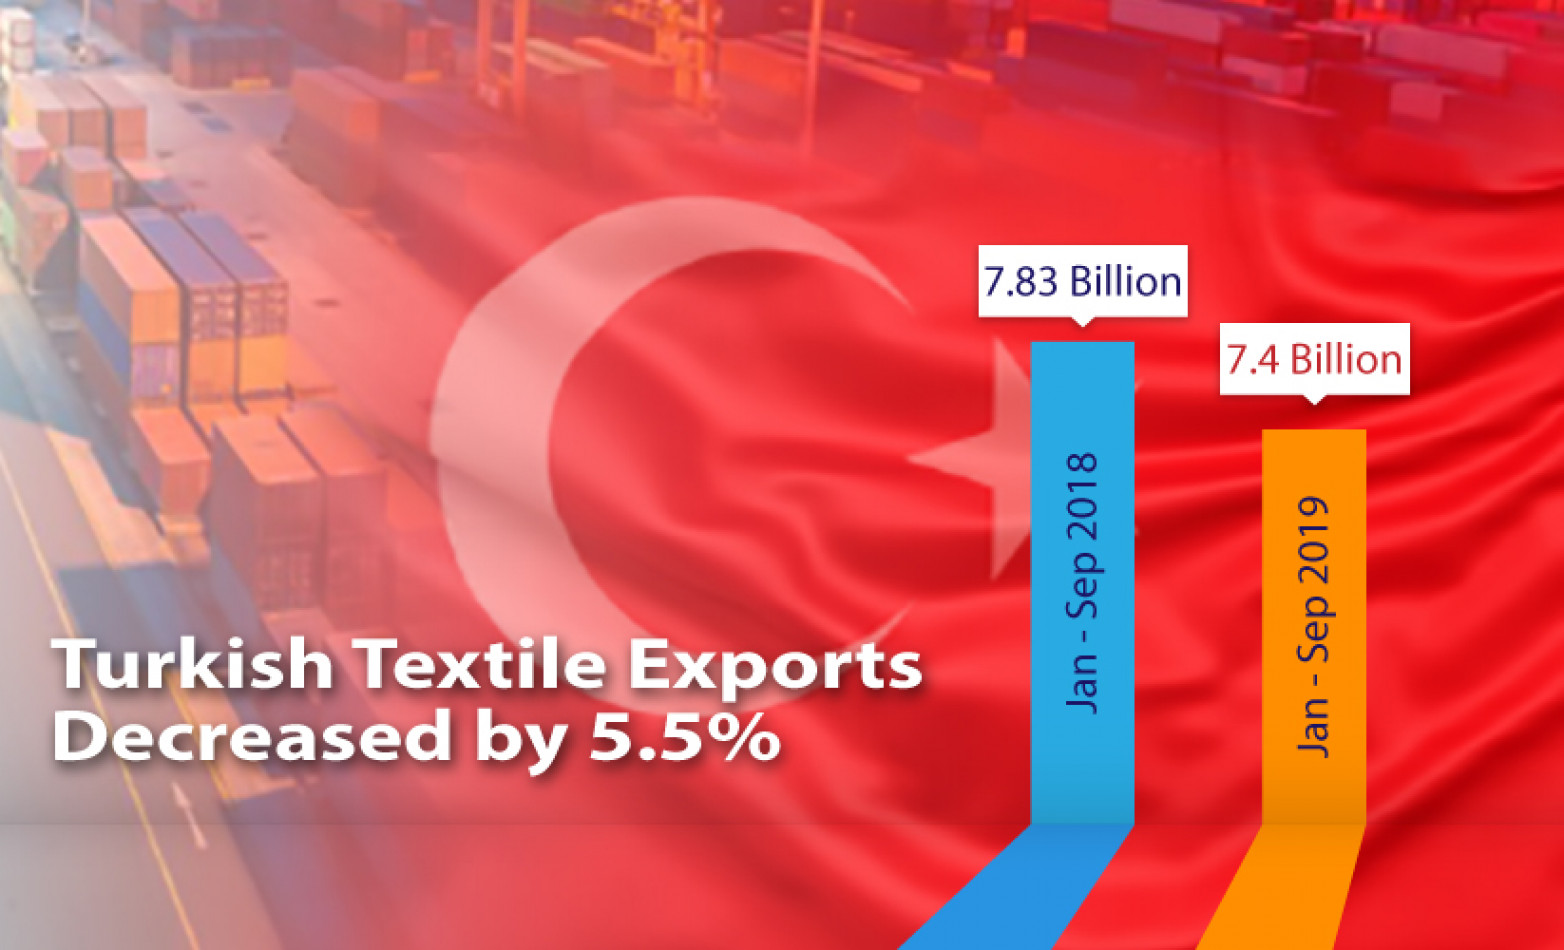 Turkey Sees Significant Decline in Textile Exports